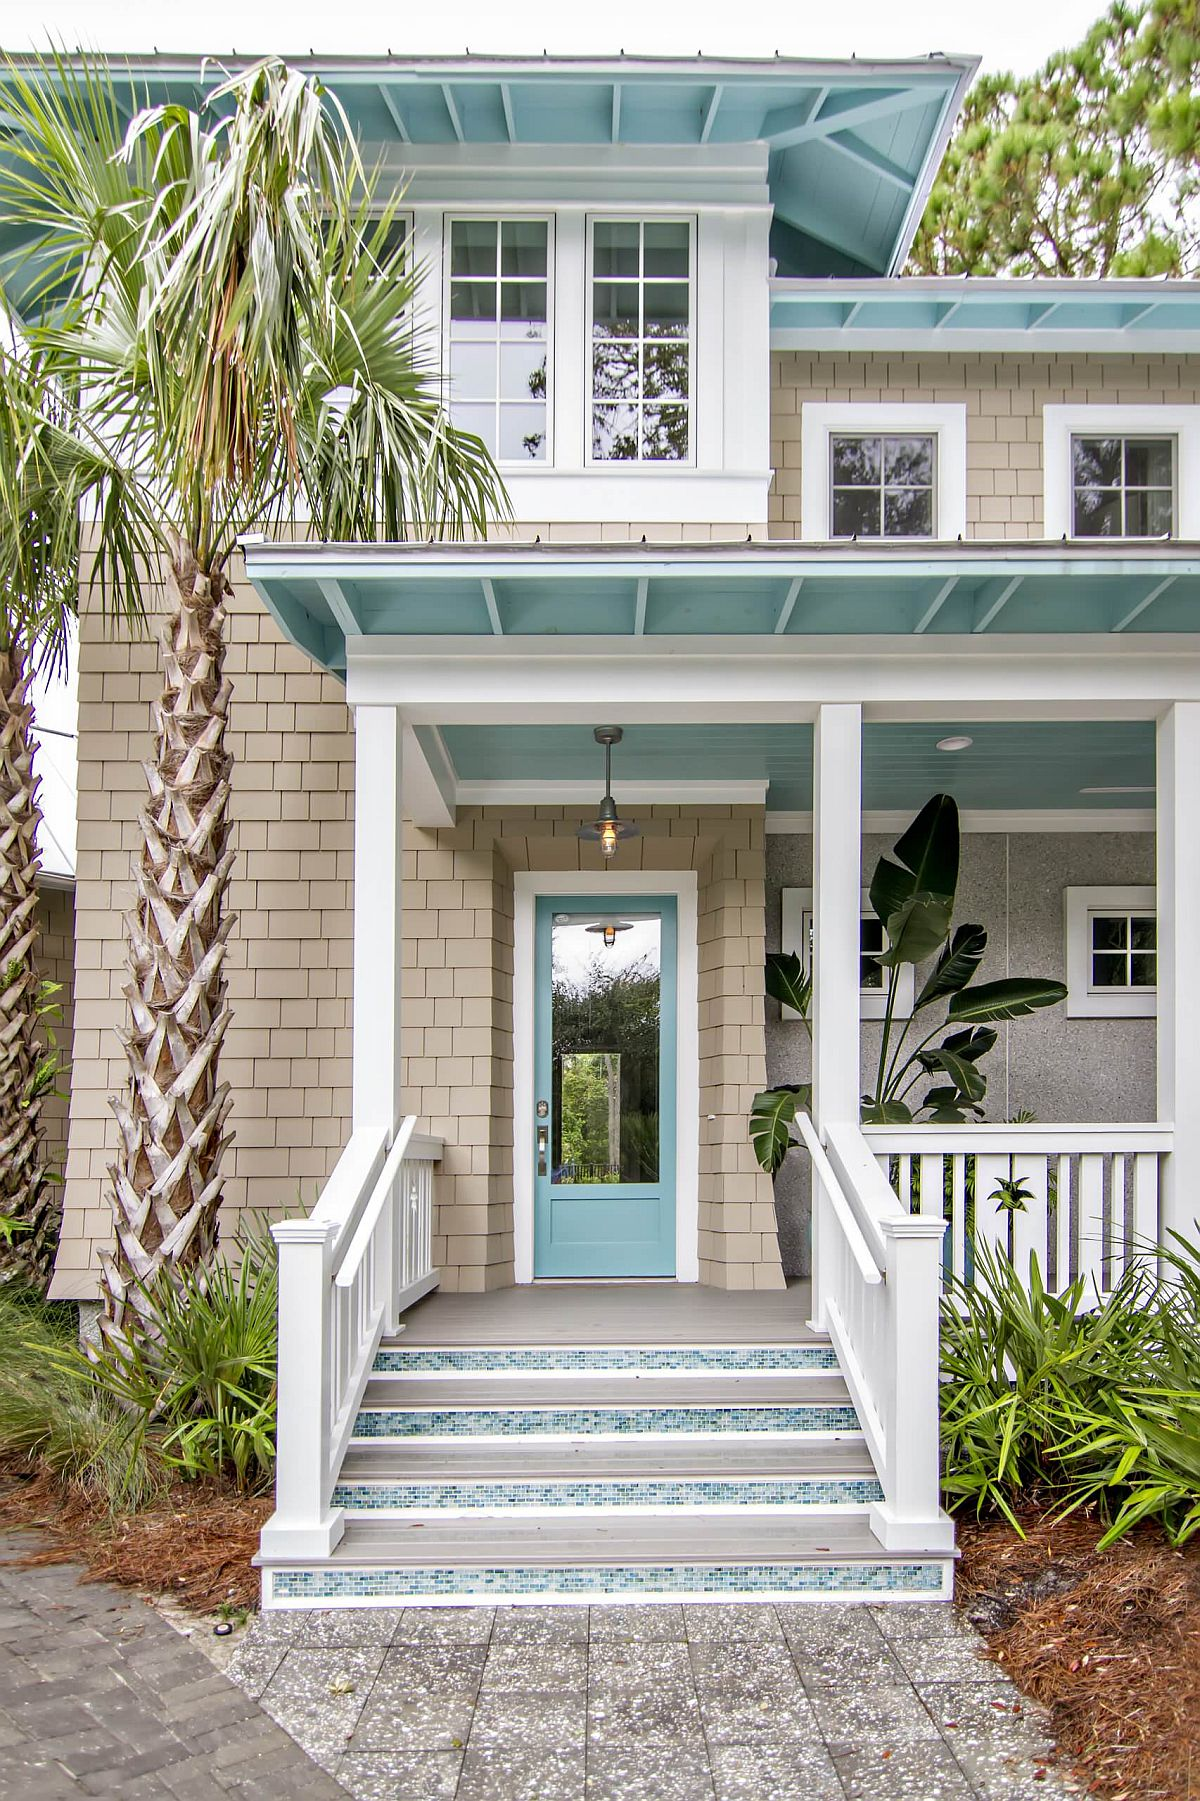 Exquisite pops of light turquoise brighten the street facade of this home in white with a beachy vibe